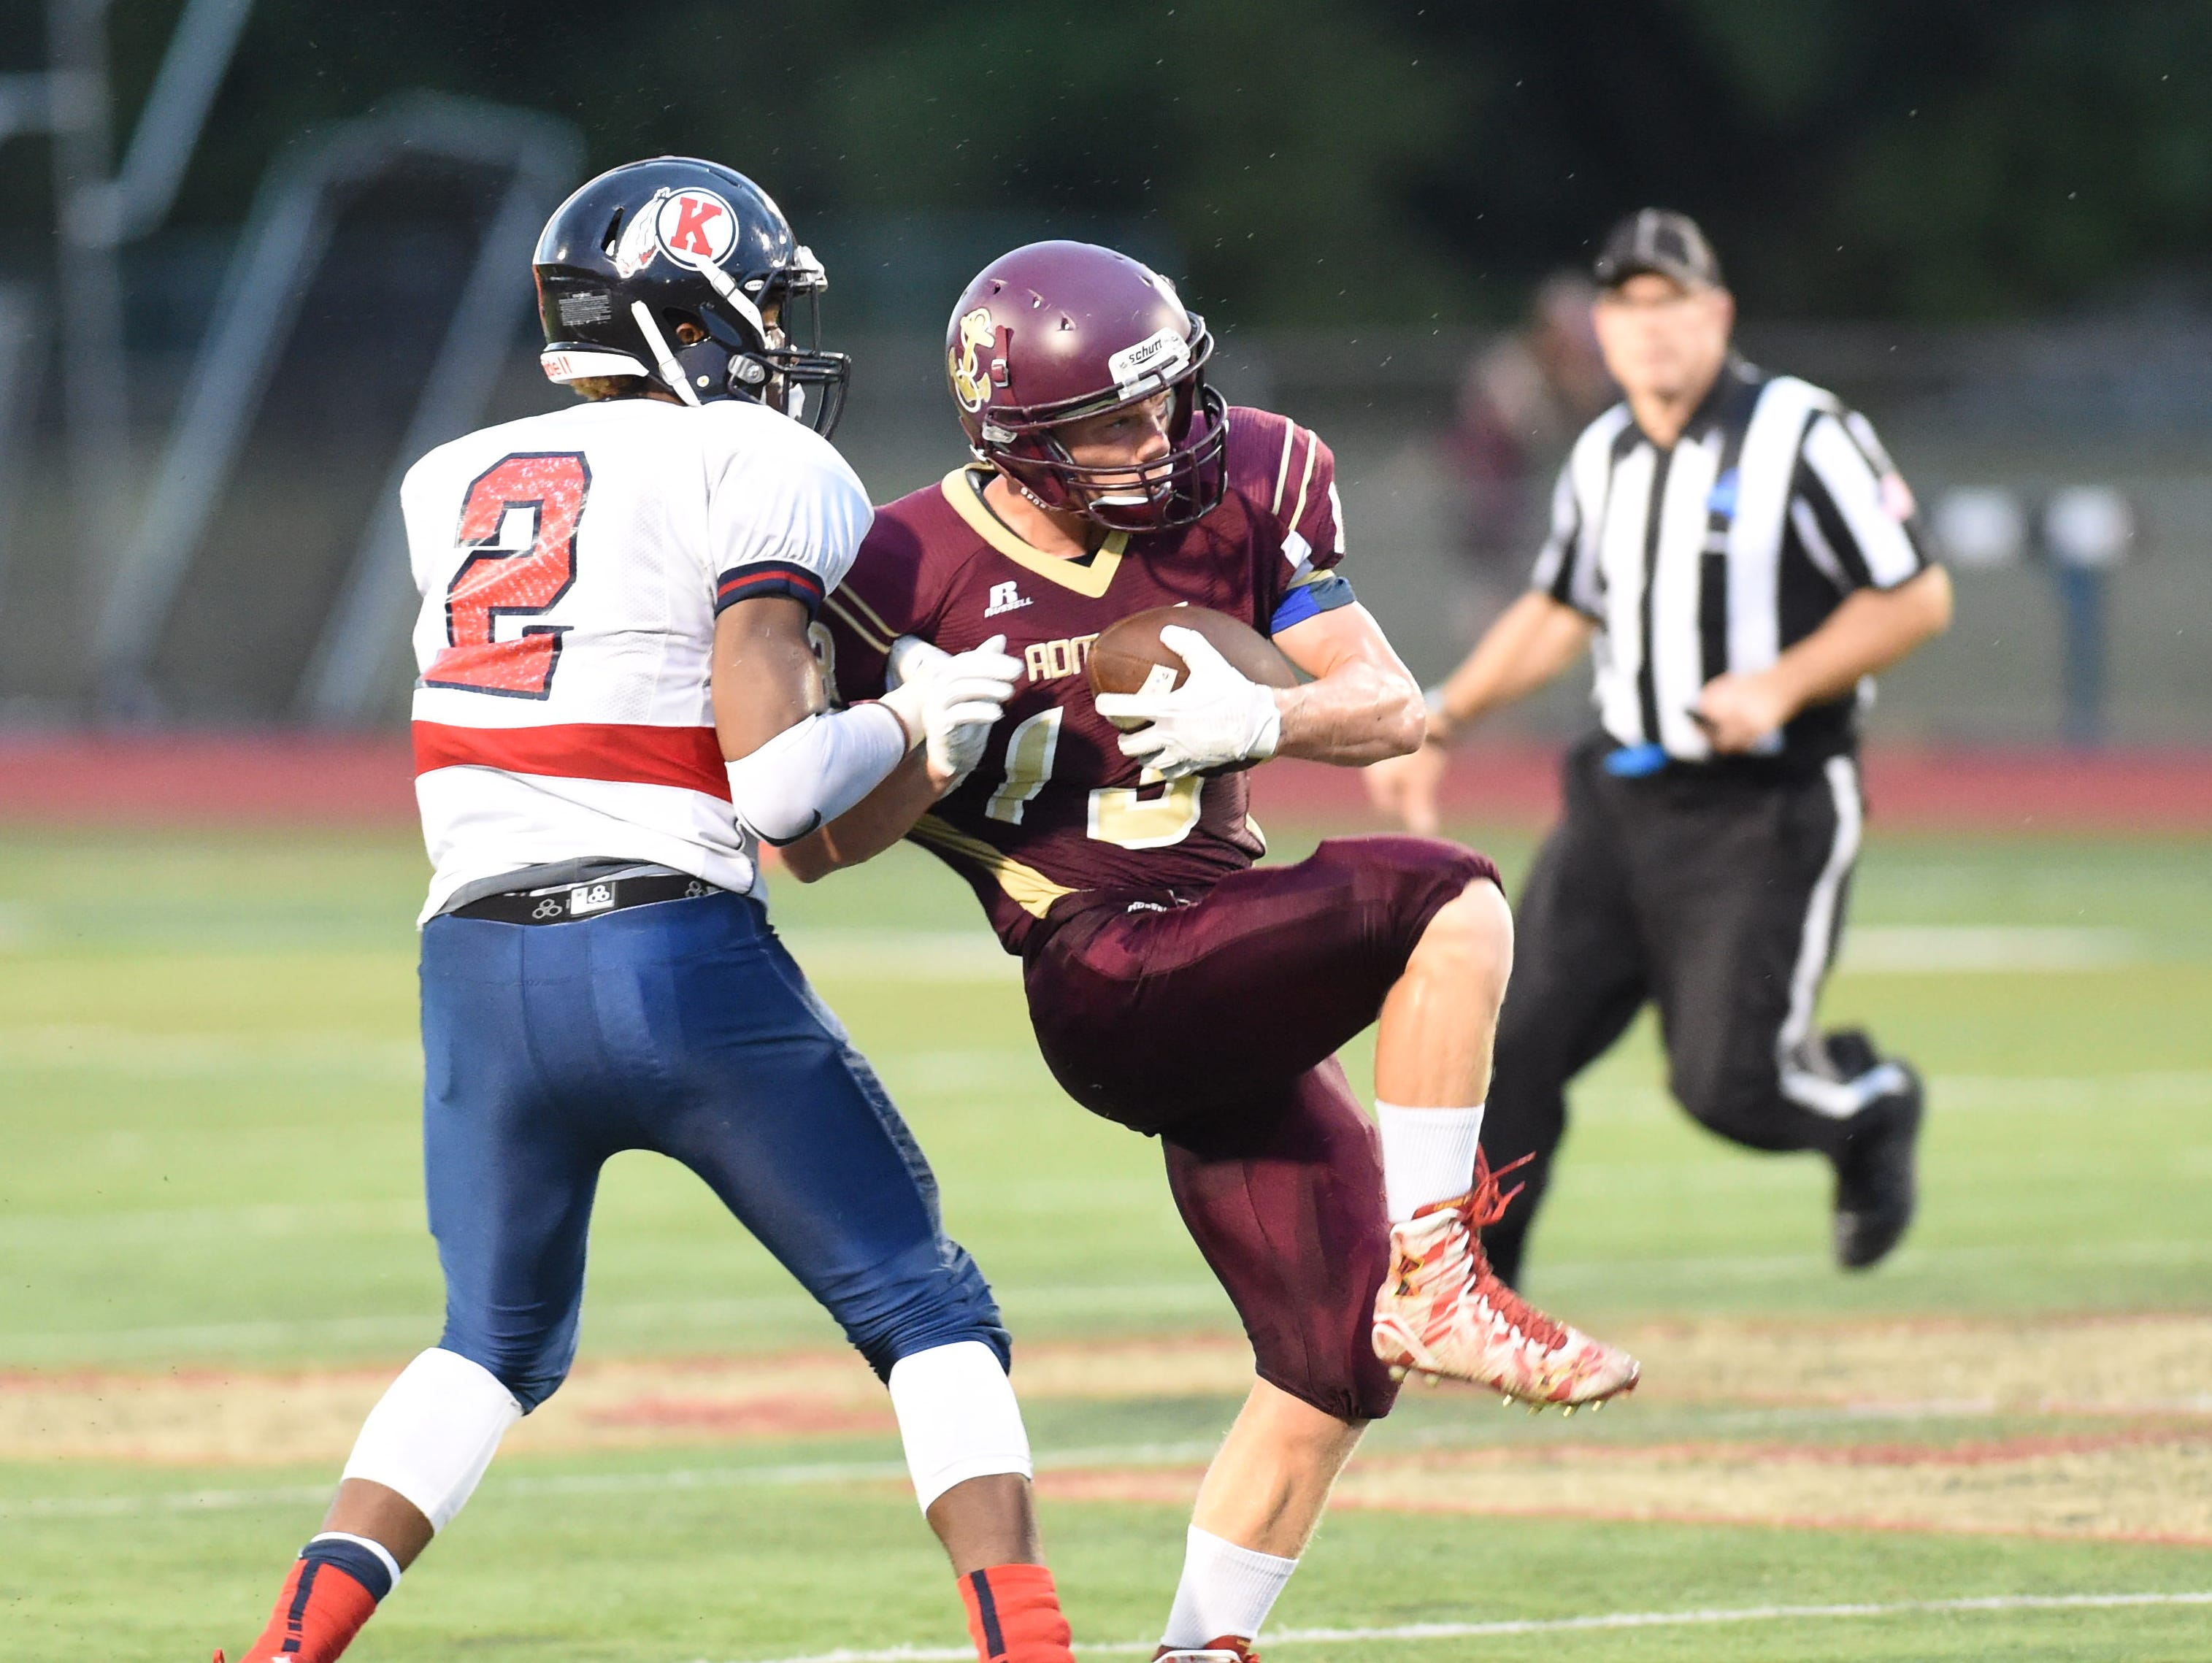 Arlington's Jacob Pfeifer intercepts a pass intended for Ketcham's Zaahir Woody during Friday's game in Freedom Plains.